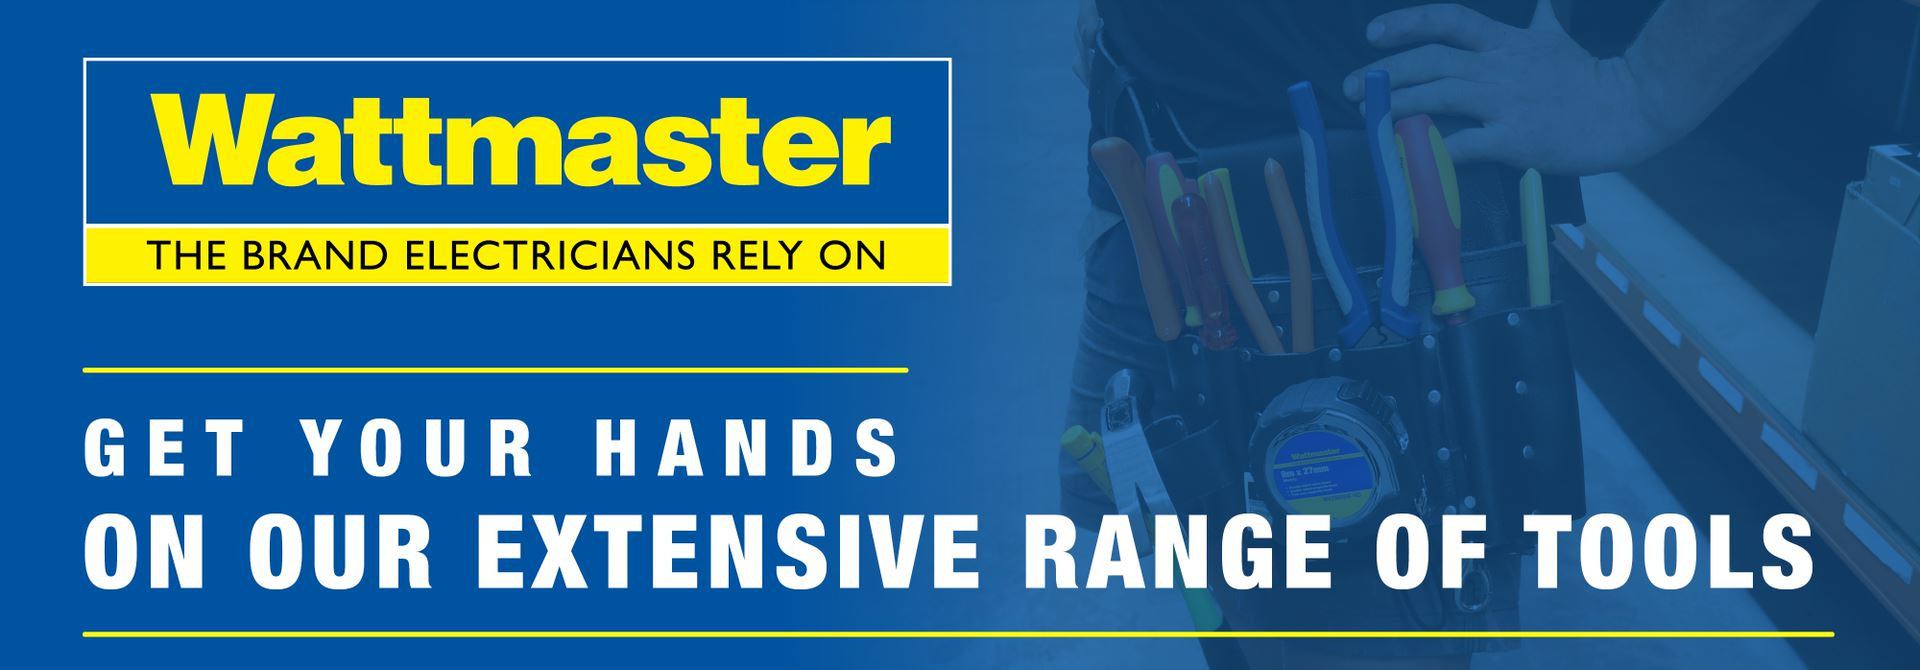 Wattmaster The Brand Electricians Rely On - Get your hands on our extensive range of tools